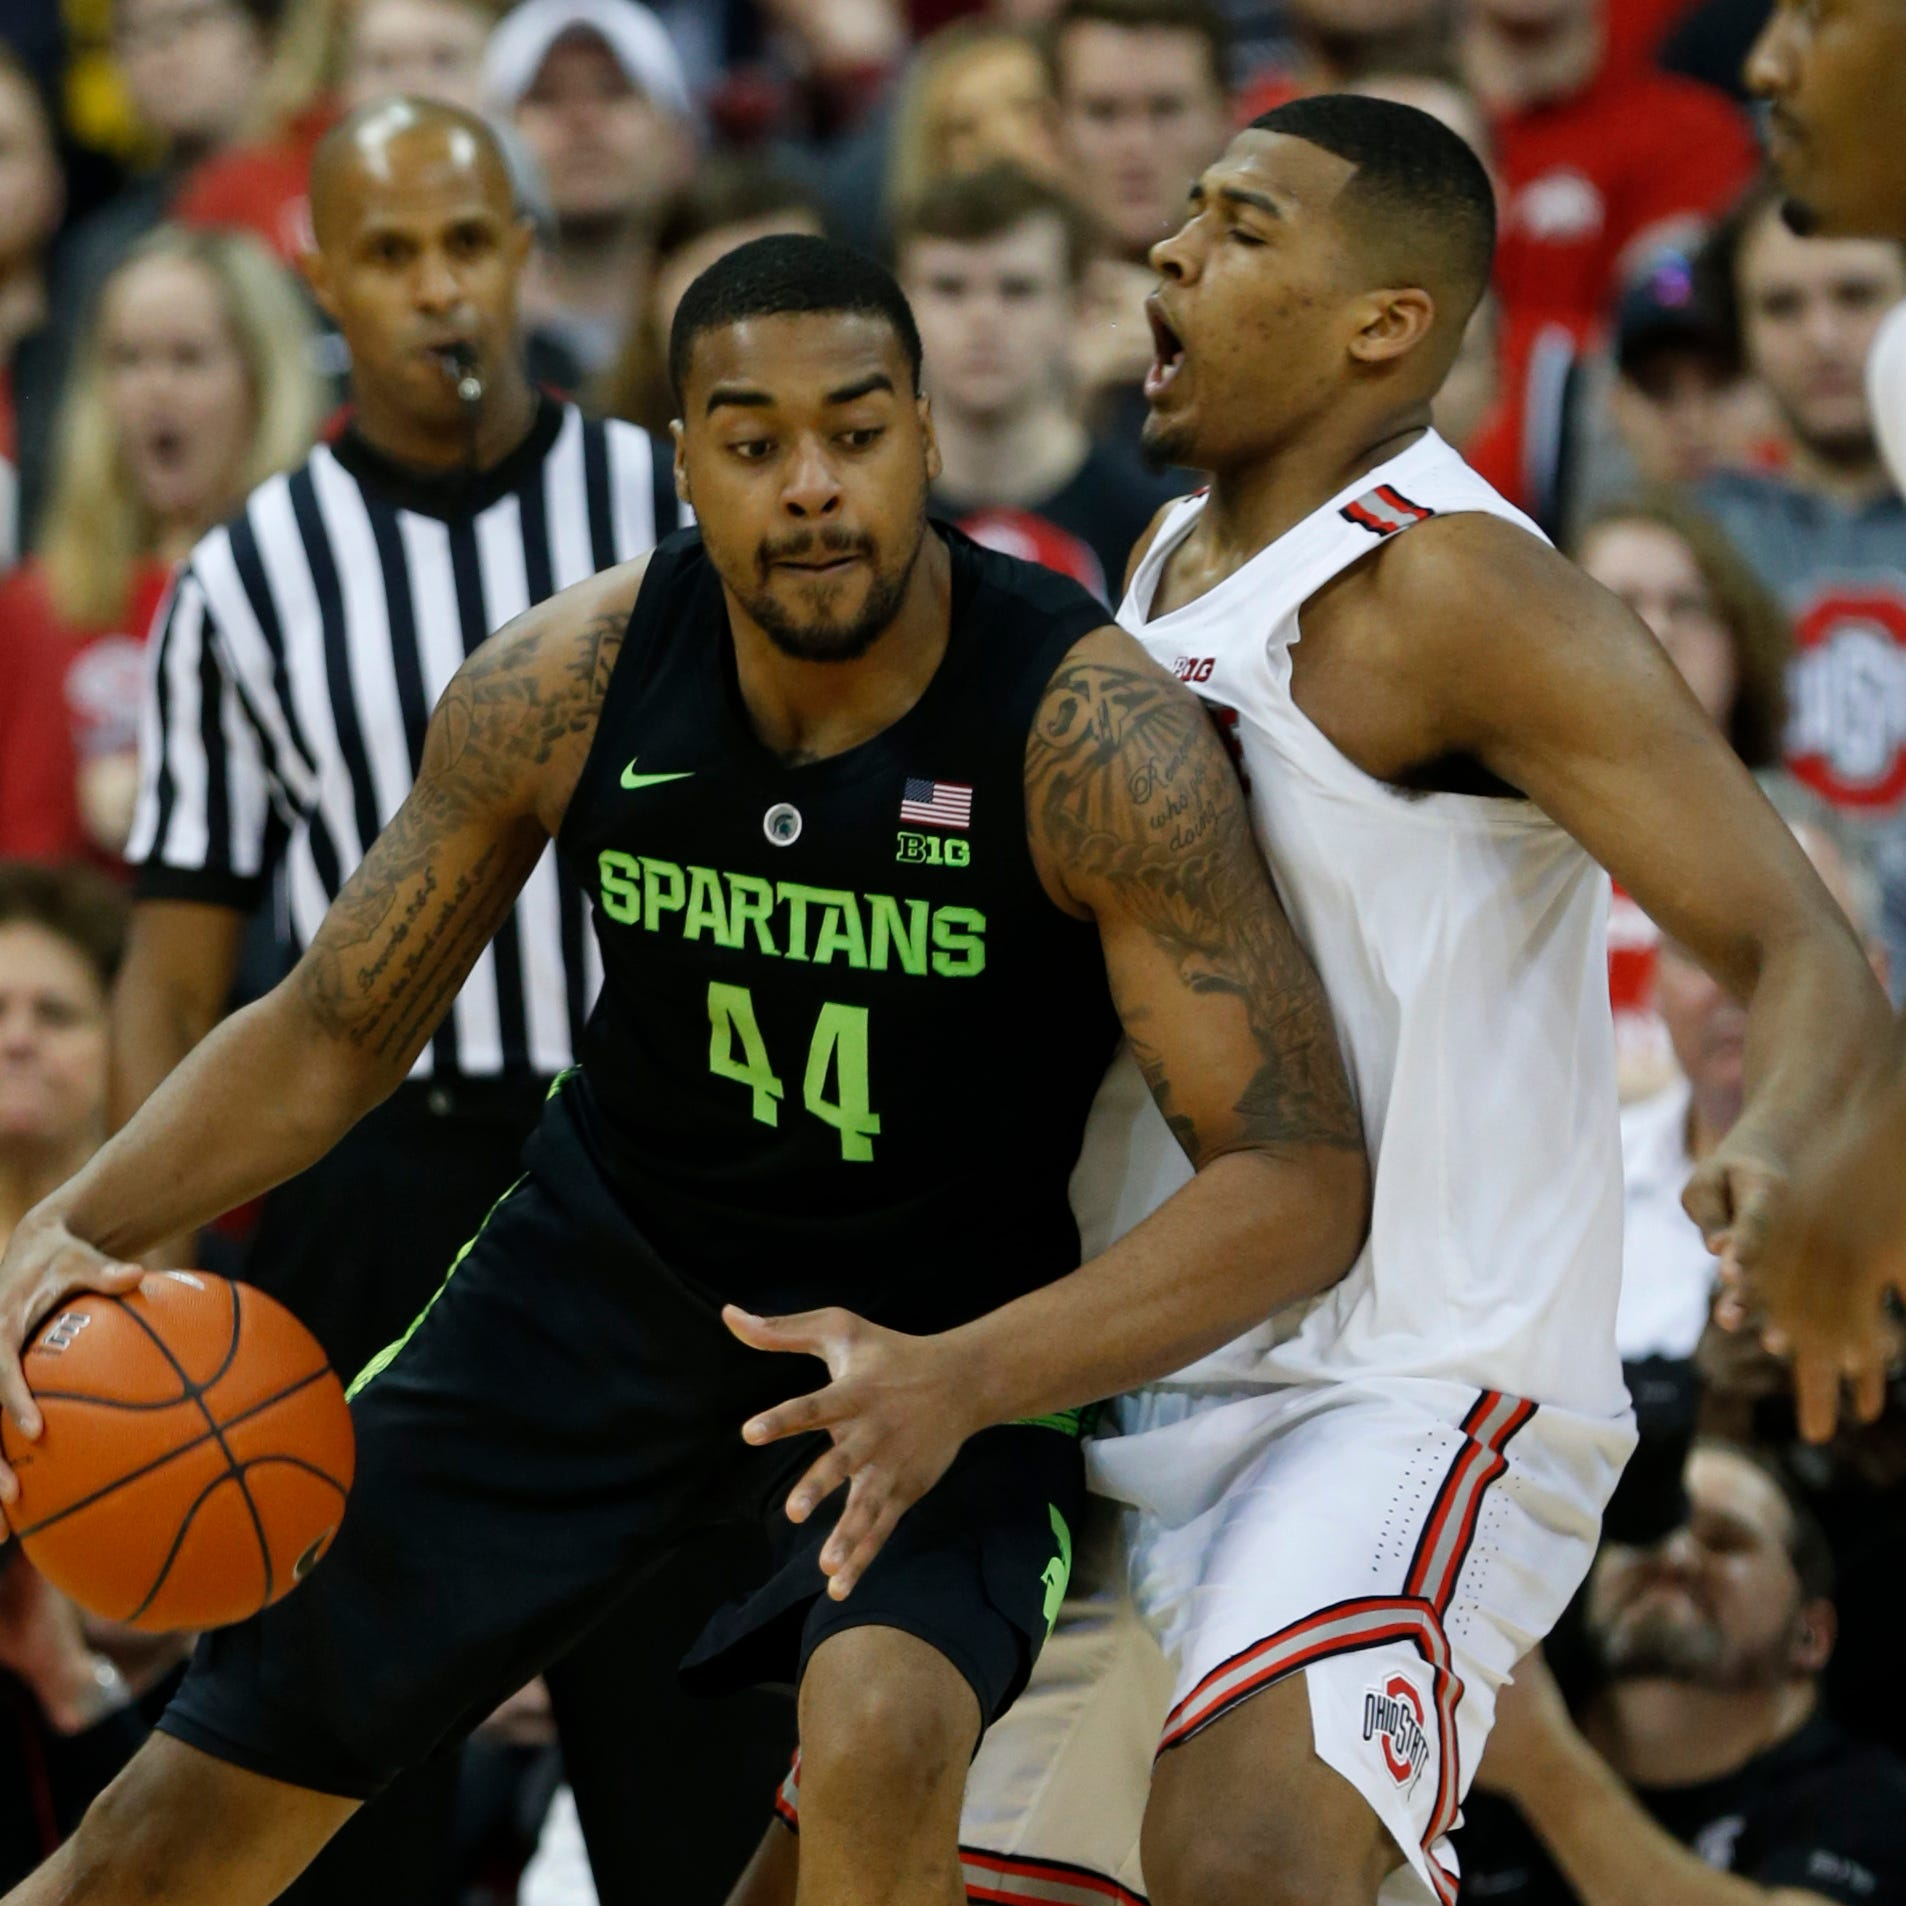 Michigan State basketball score vs. Ohio State: Scoring updates